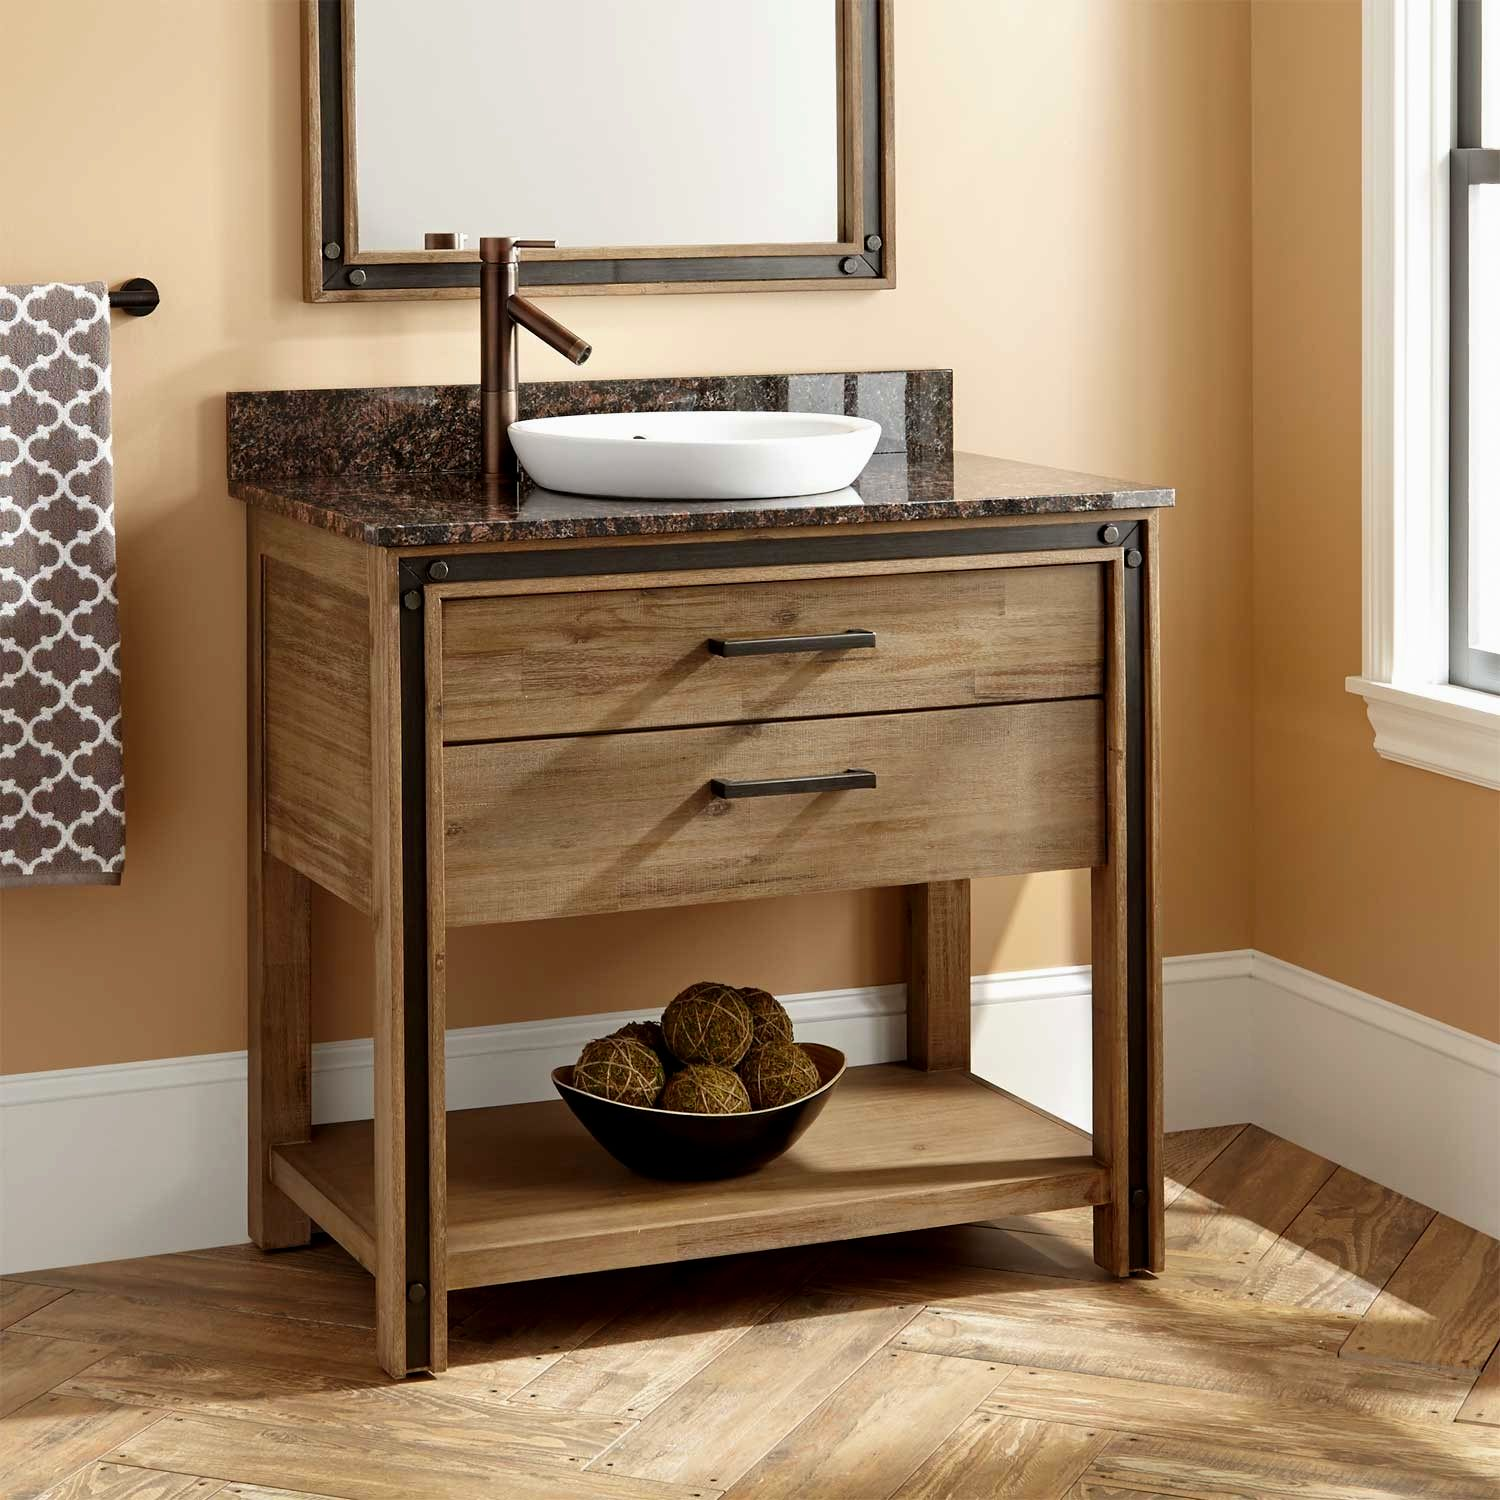 distance inspirational glass bathroom picture sink vessel bowl costco sinks with between vanities of vanity